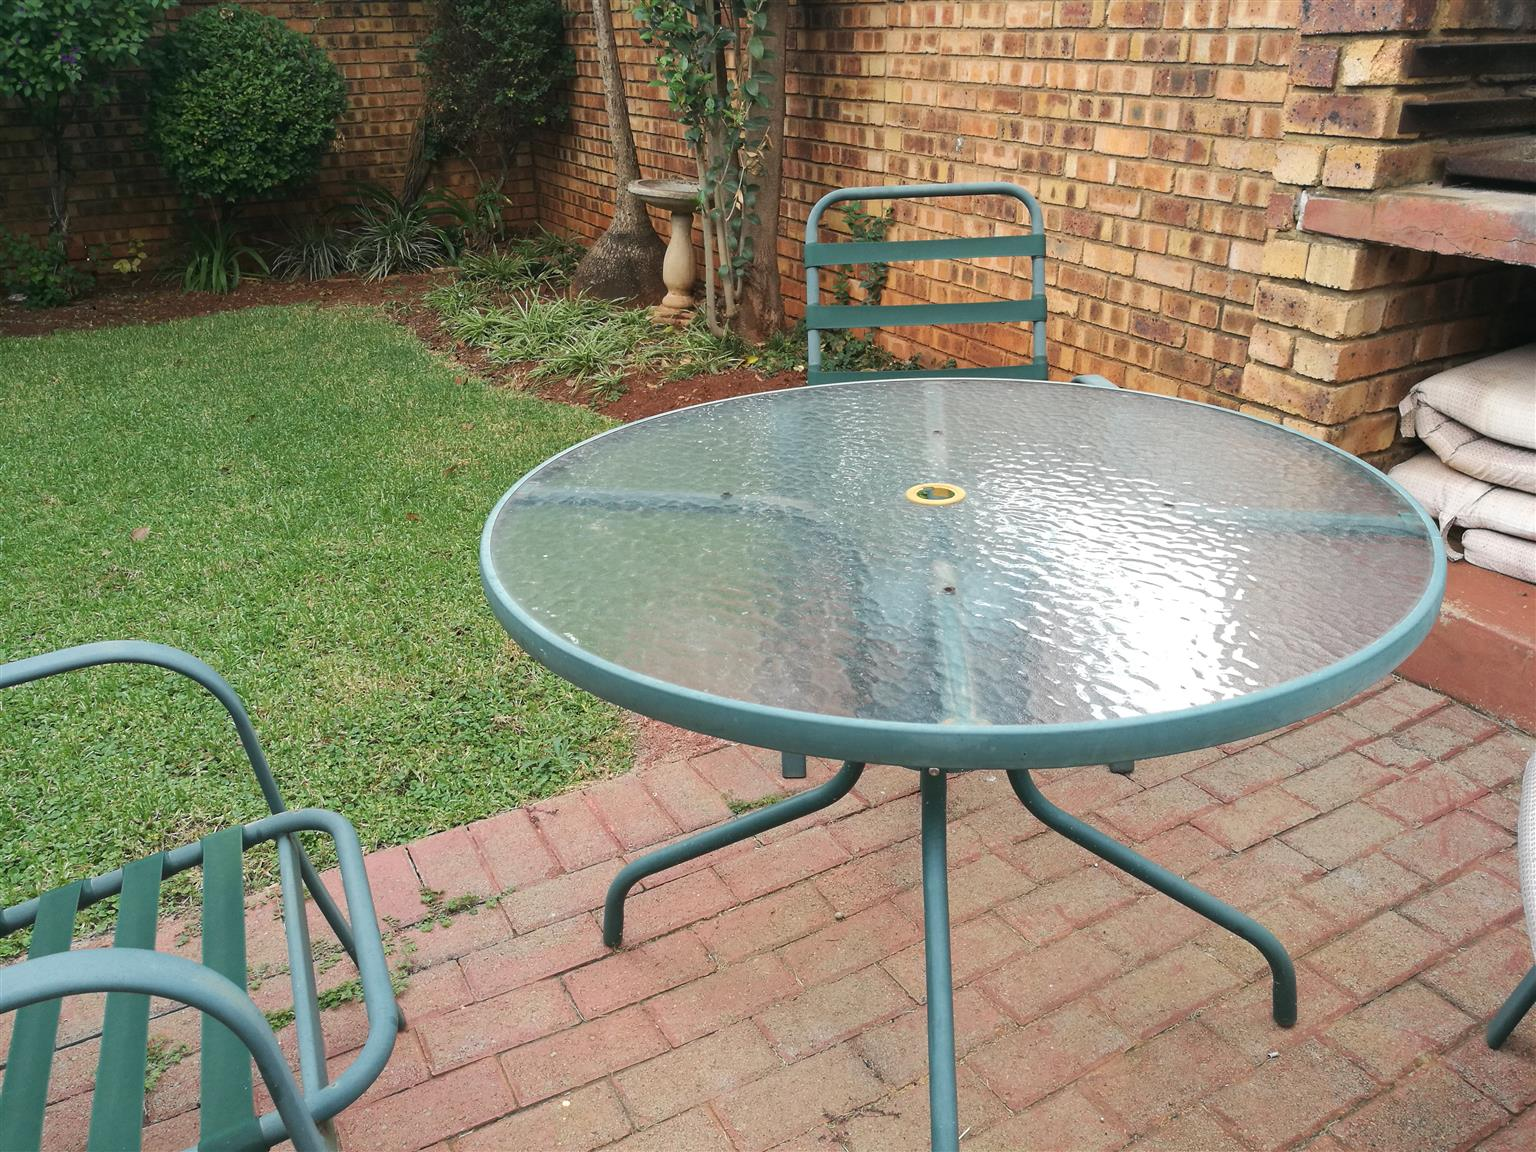 Garden table with 4 chairs, cushions included